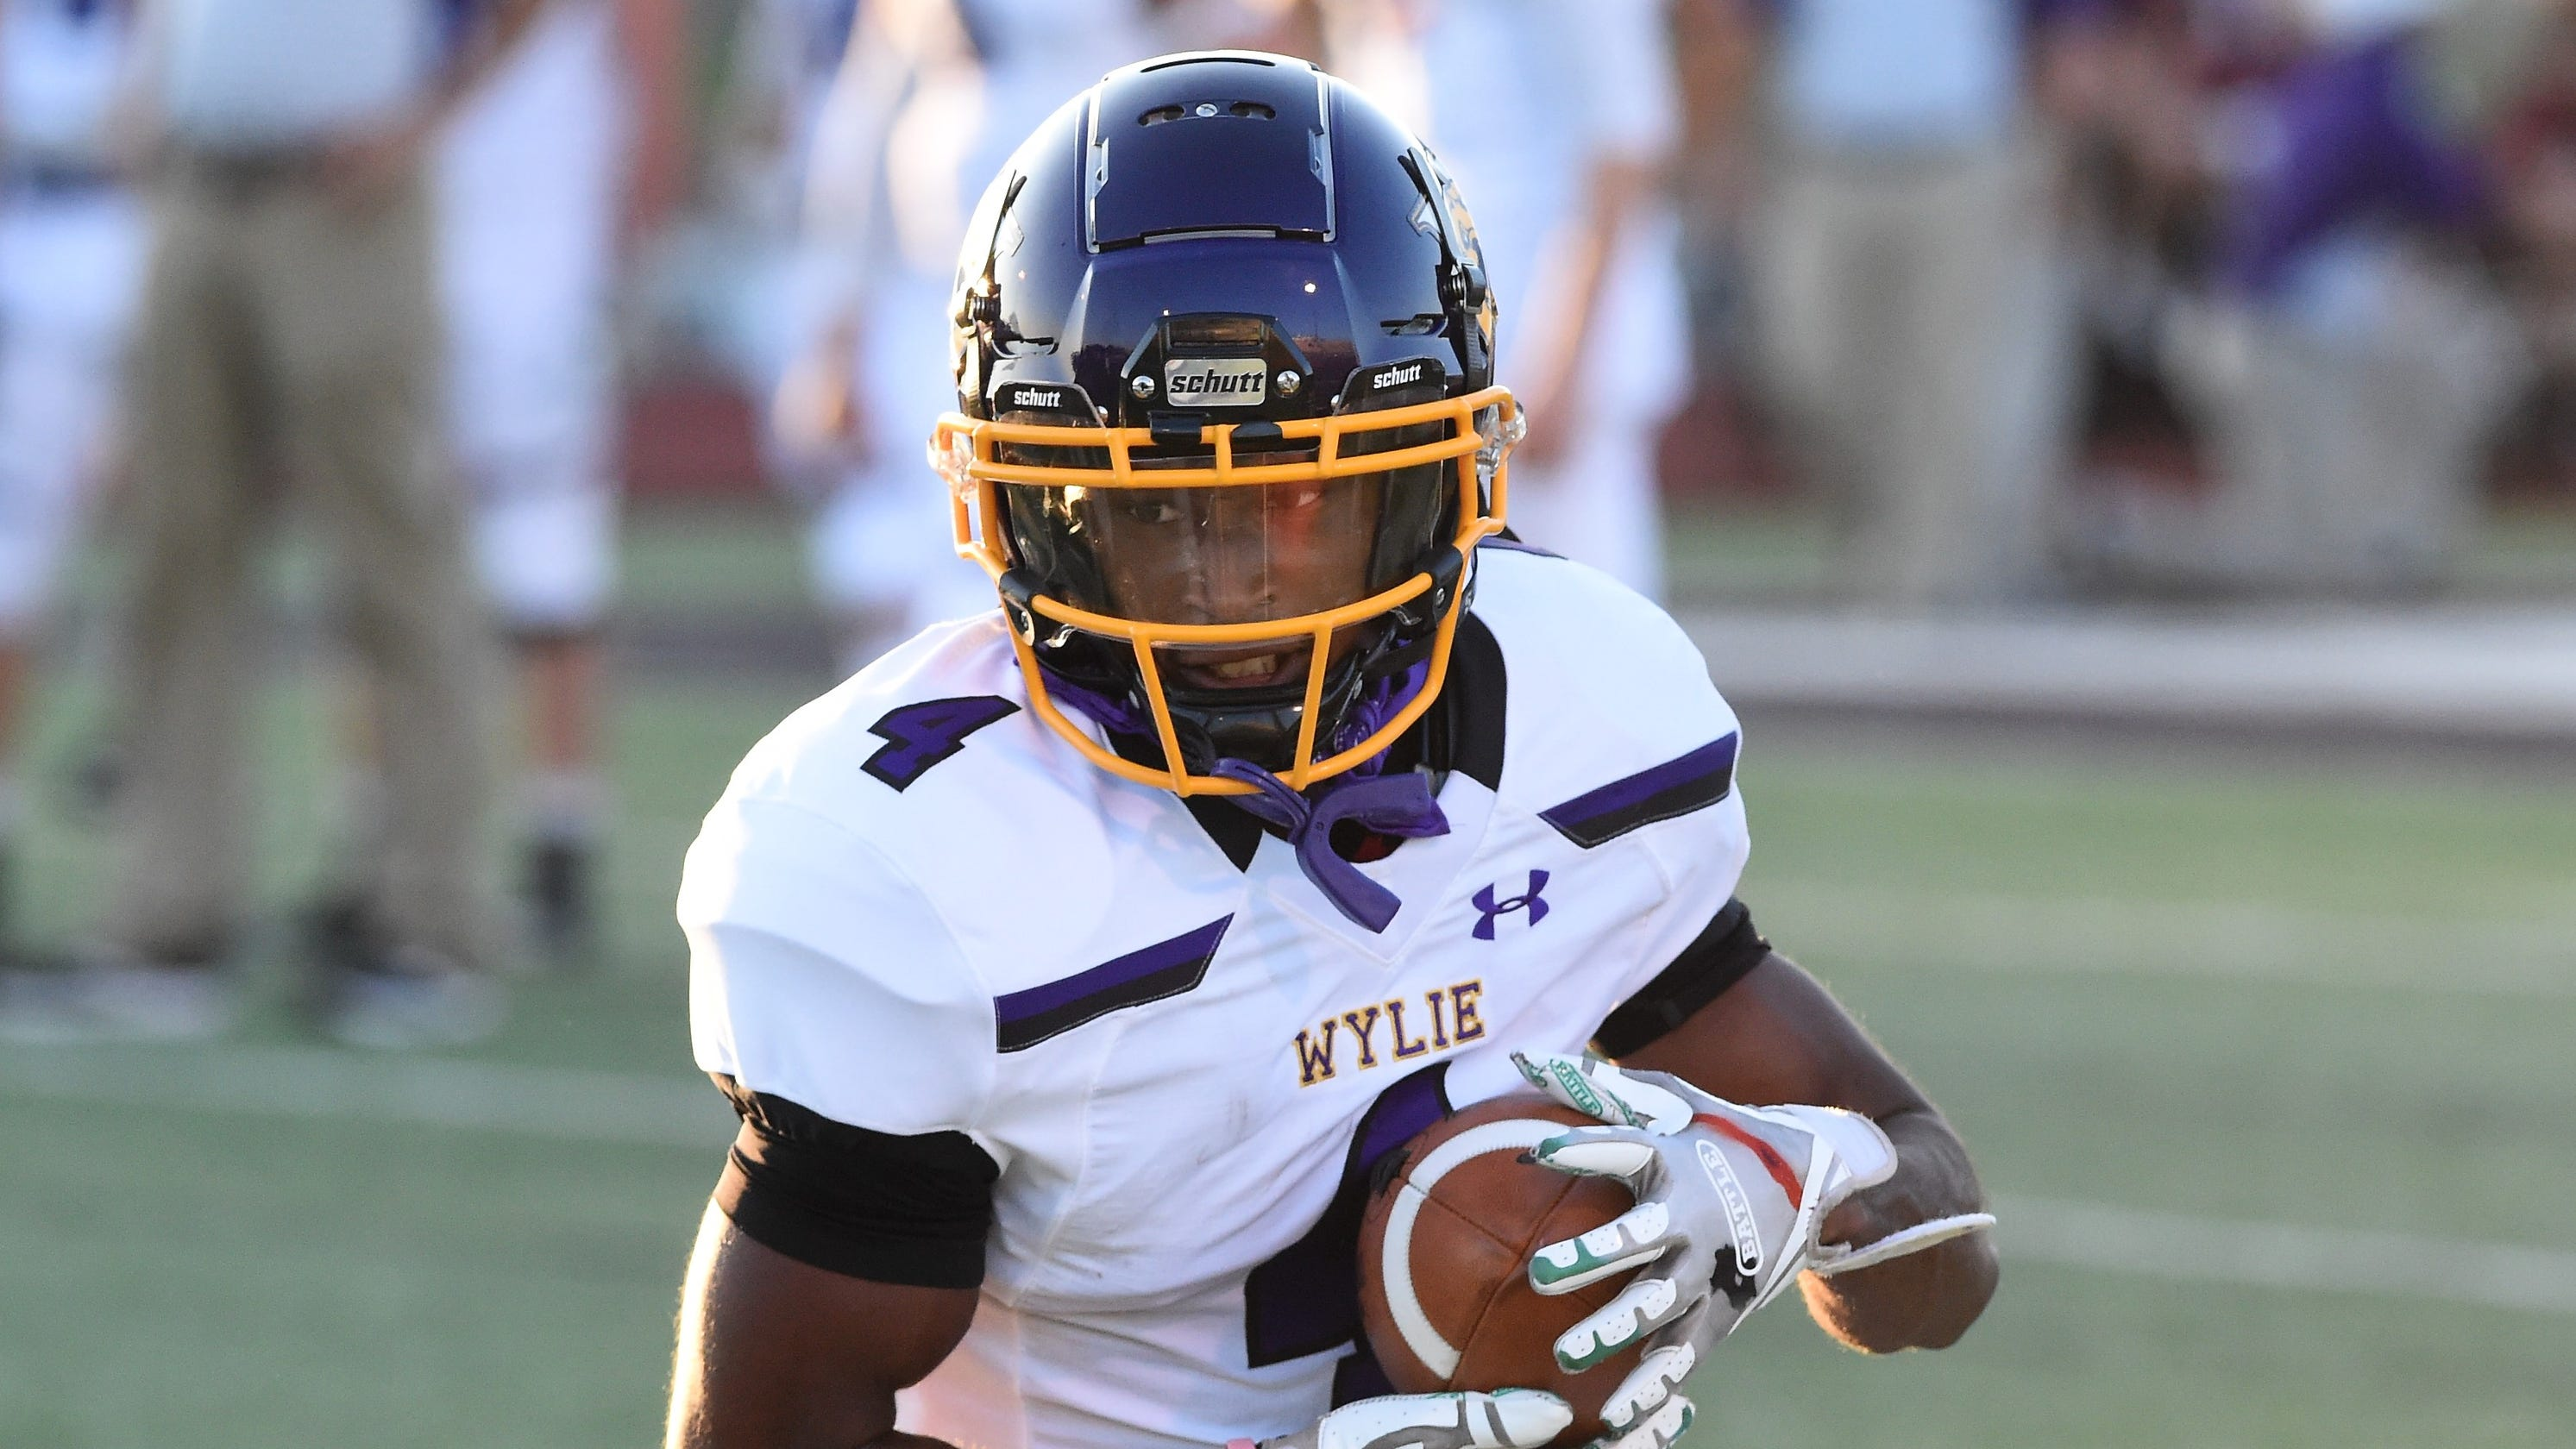 Local Player of the Week: Wylie football's Jahzair George scores award with defense